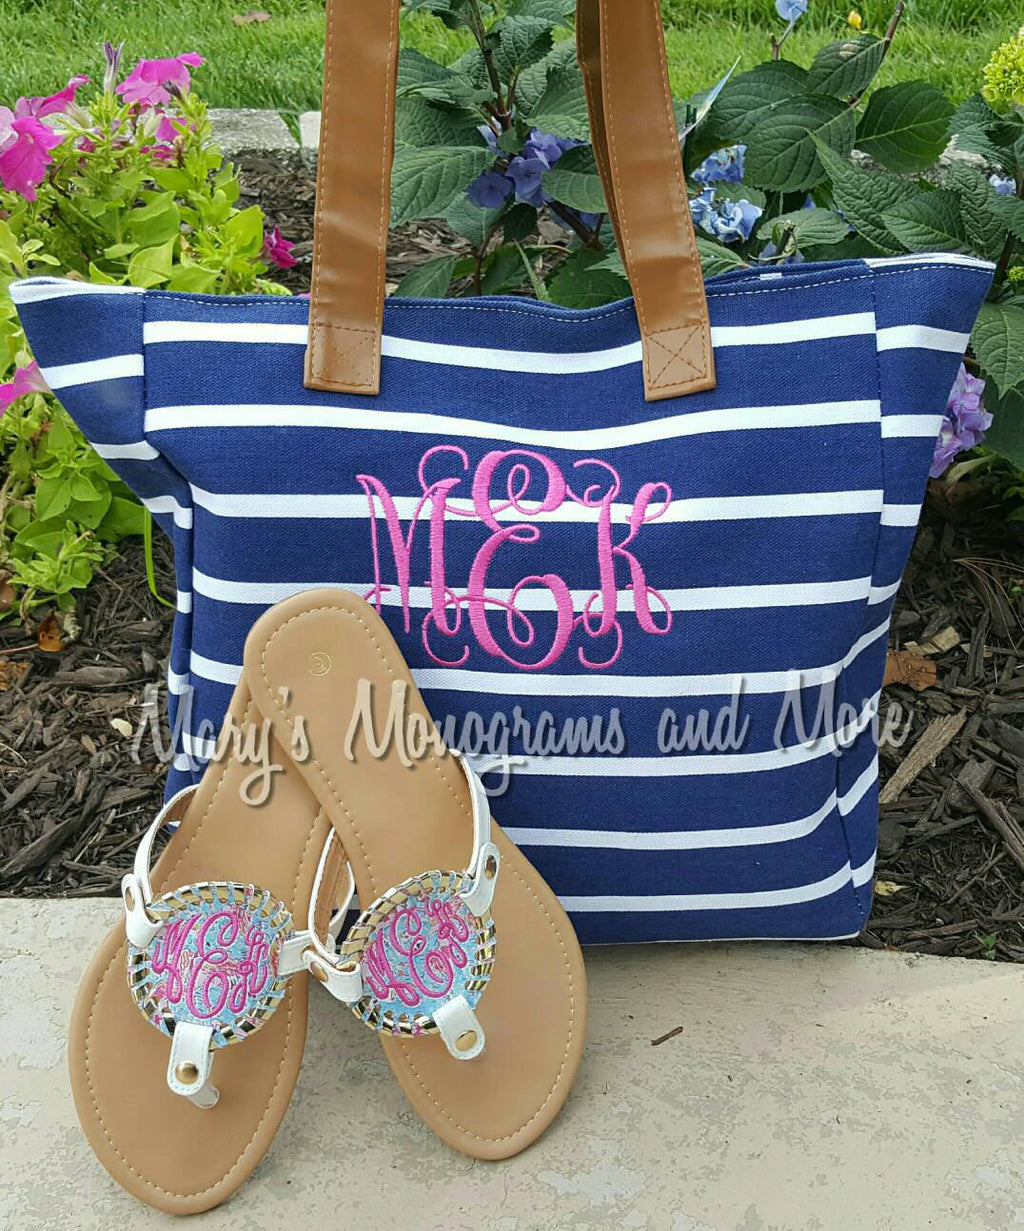 Monogrammed Striped Canvas Tote Bag